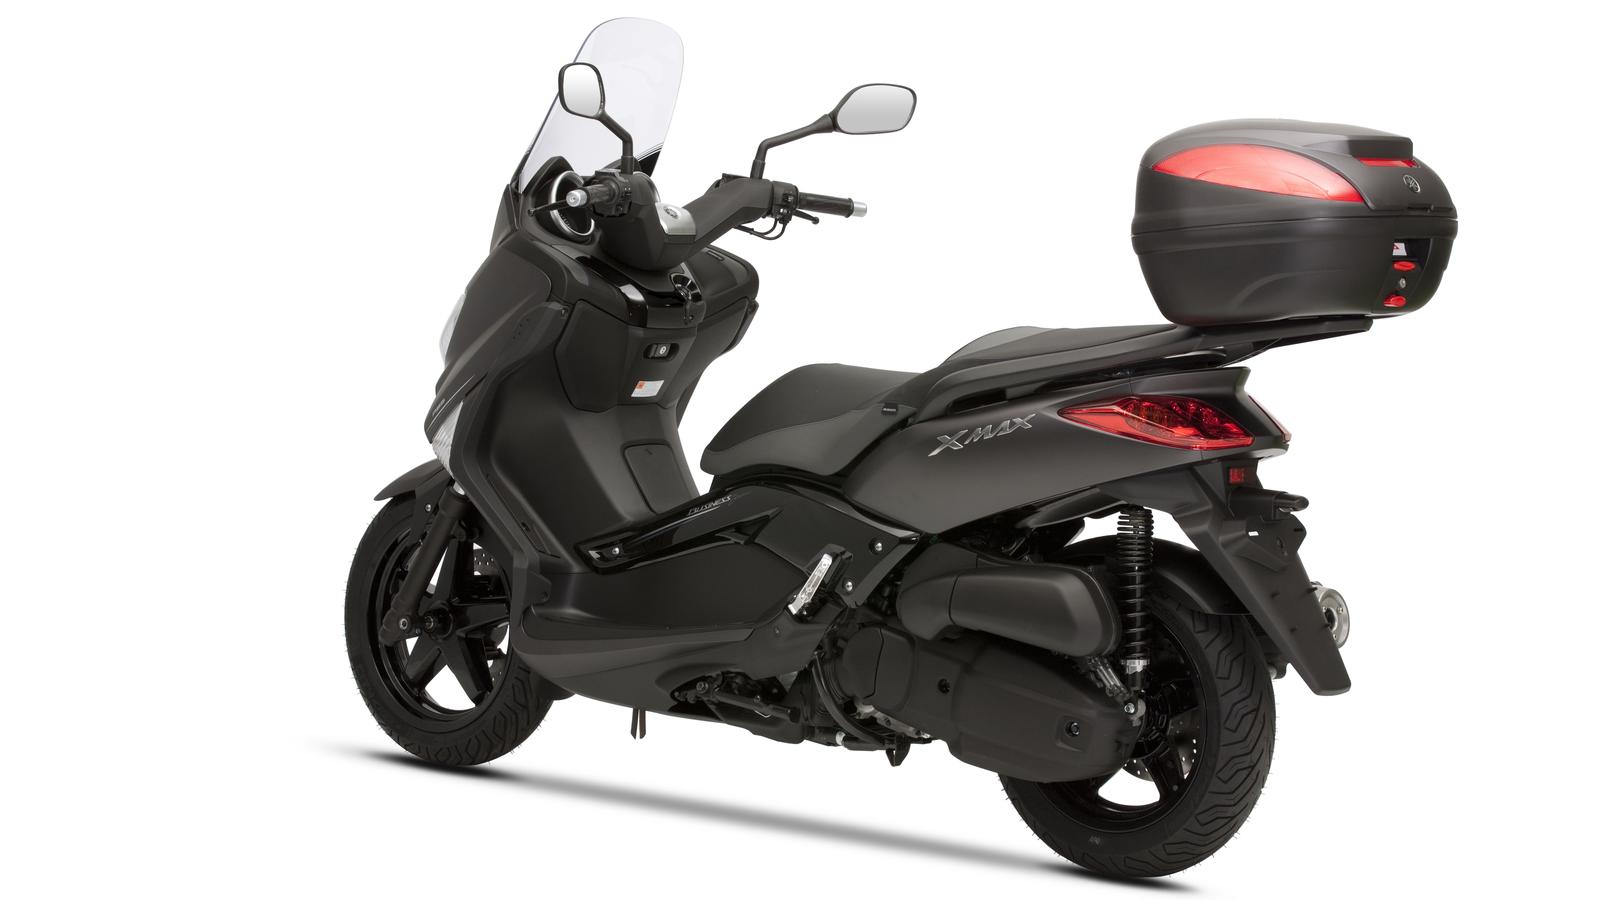 2013 yamaha x max 125 pics specs and information. Black Bedroom Furniture Sets. Home Design Ideas